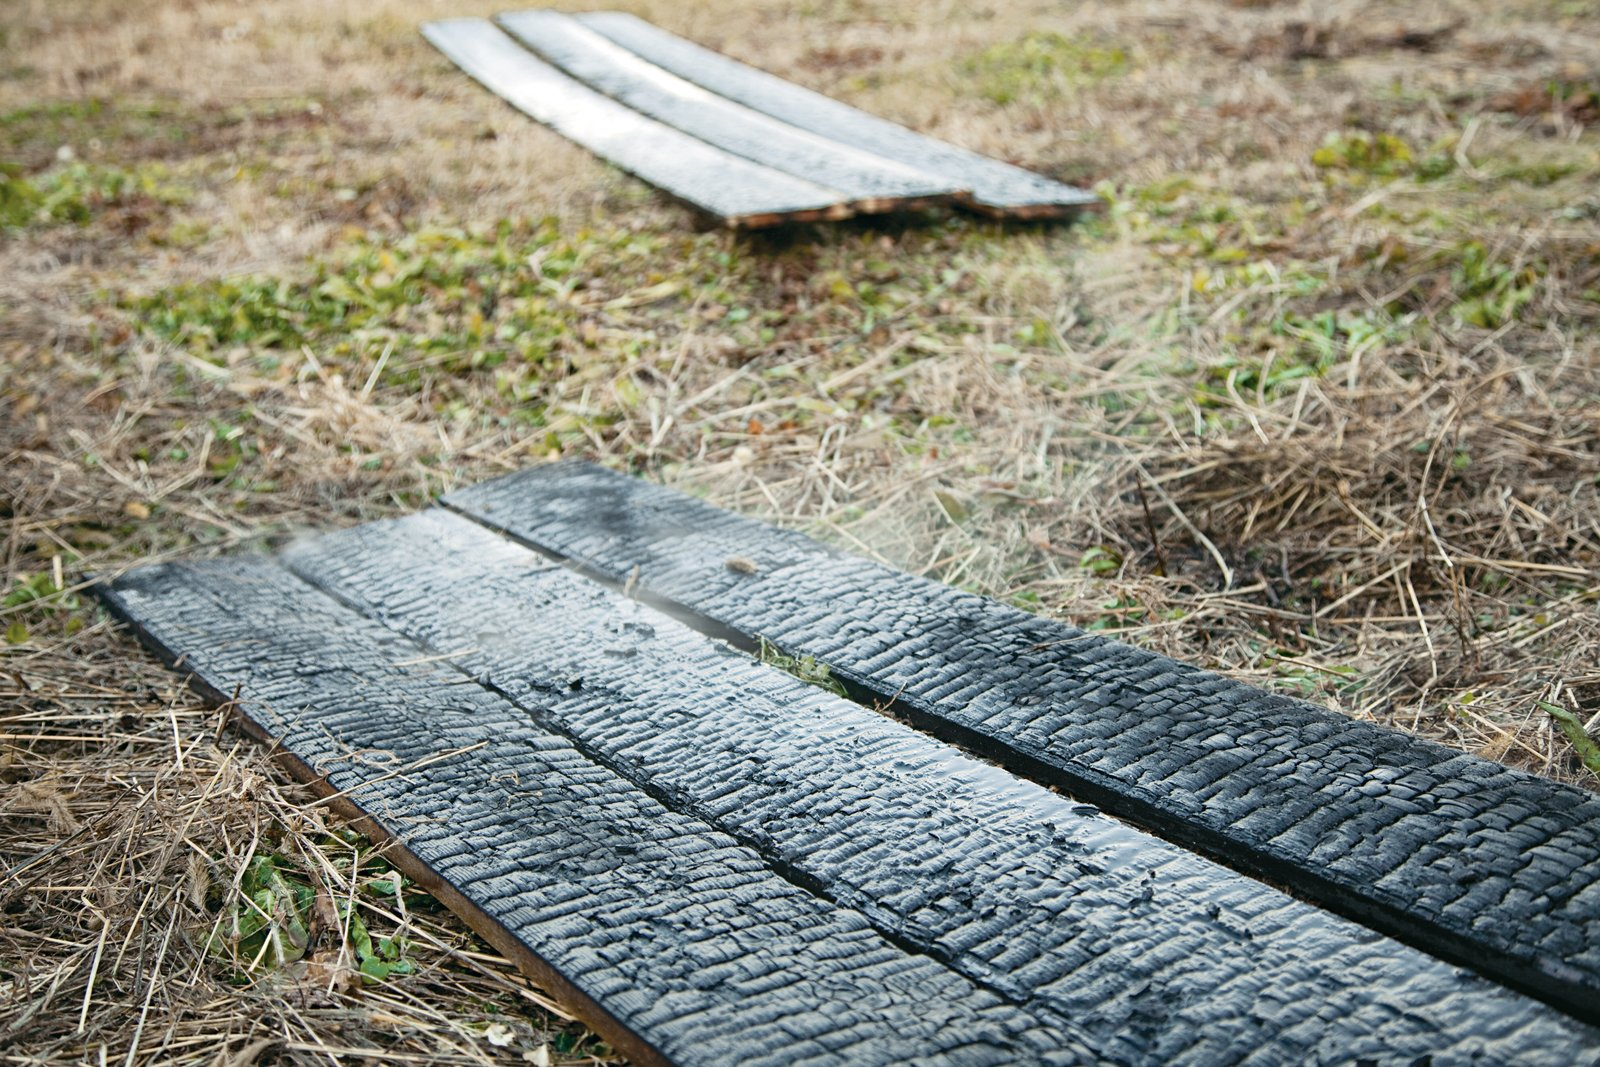 The primitive and painstaking process is said to protect wood against rain, rot, and insects for 80 years. It also gives the exteriors a reptilian texture that's as striking as it is practical.